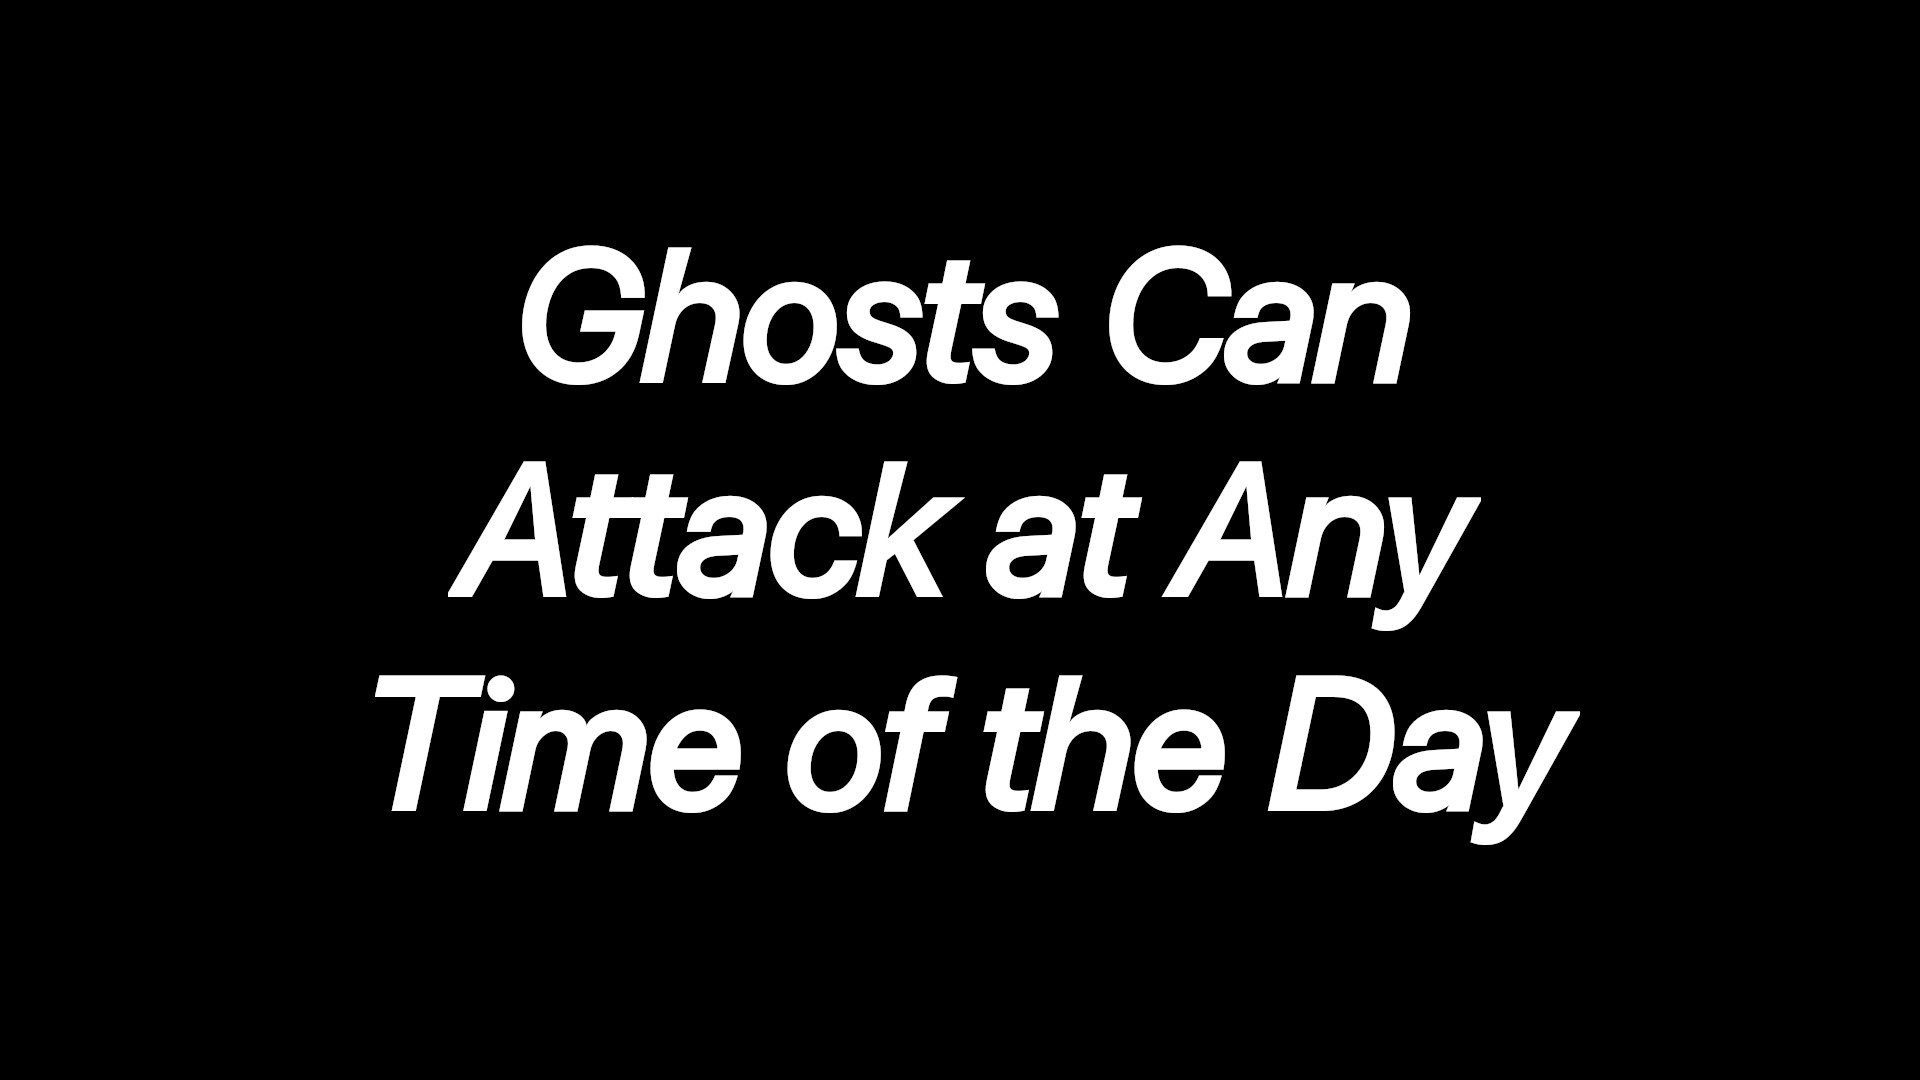 Ghosts Can Attack at Any Time of the Day